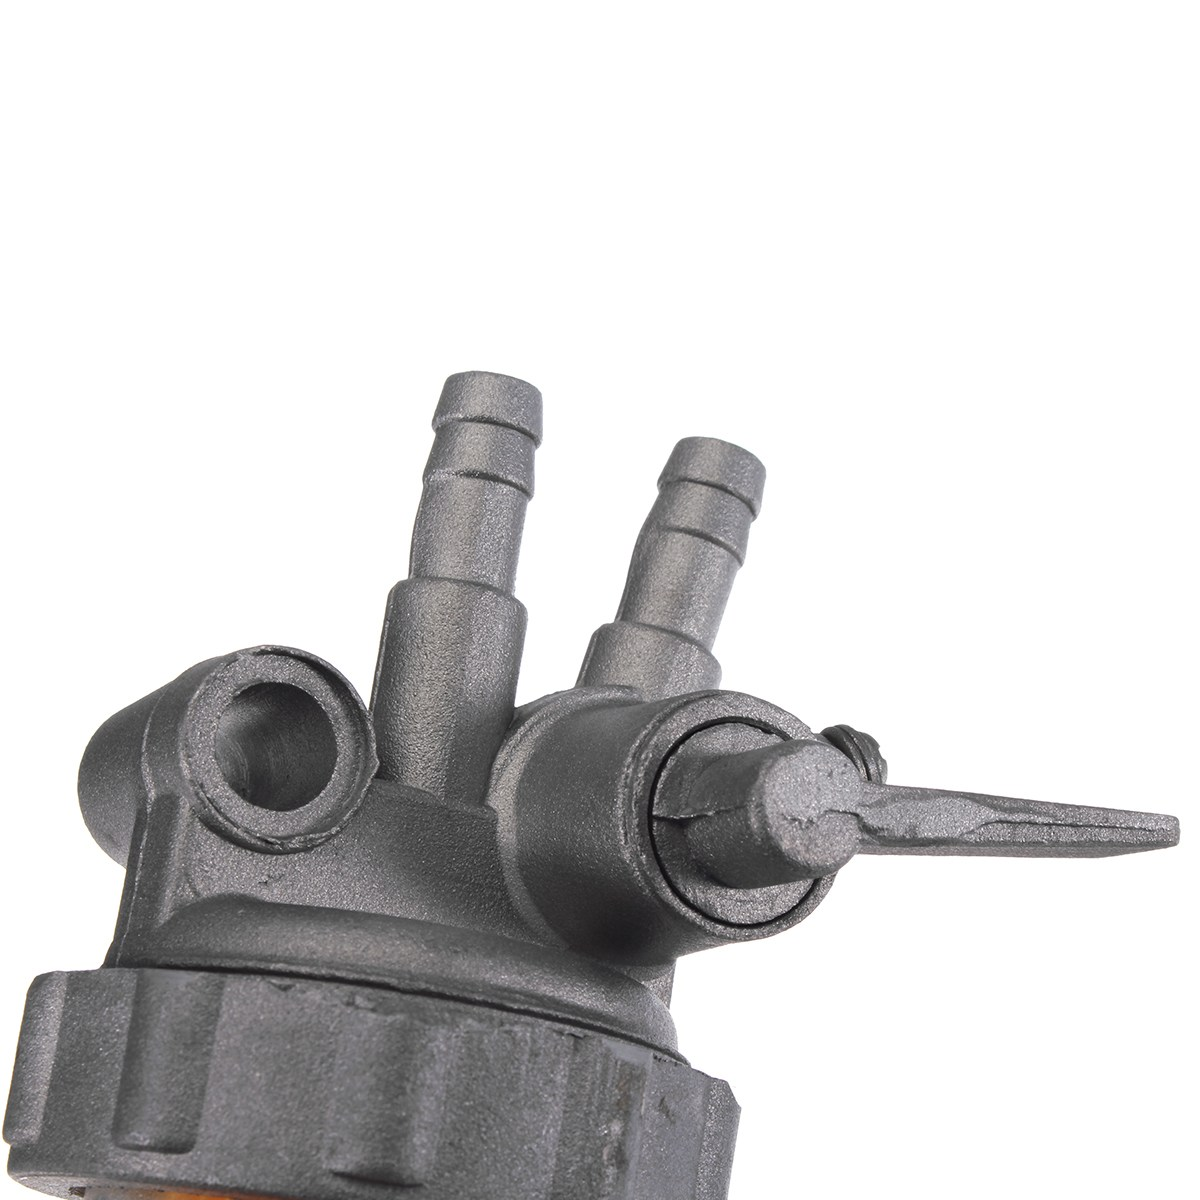 Diesel Fuel Filter Shutoff Valve Assembly For Kama Kipor Silent Generator